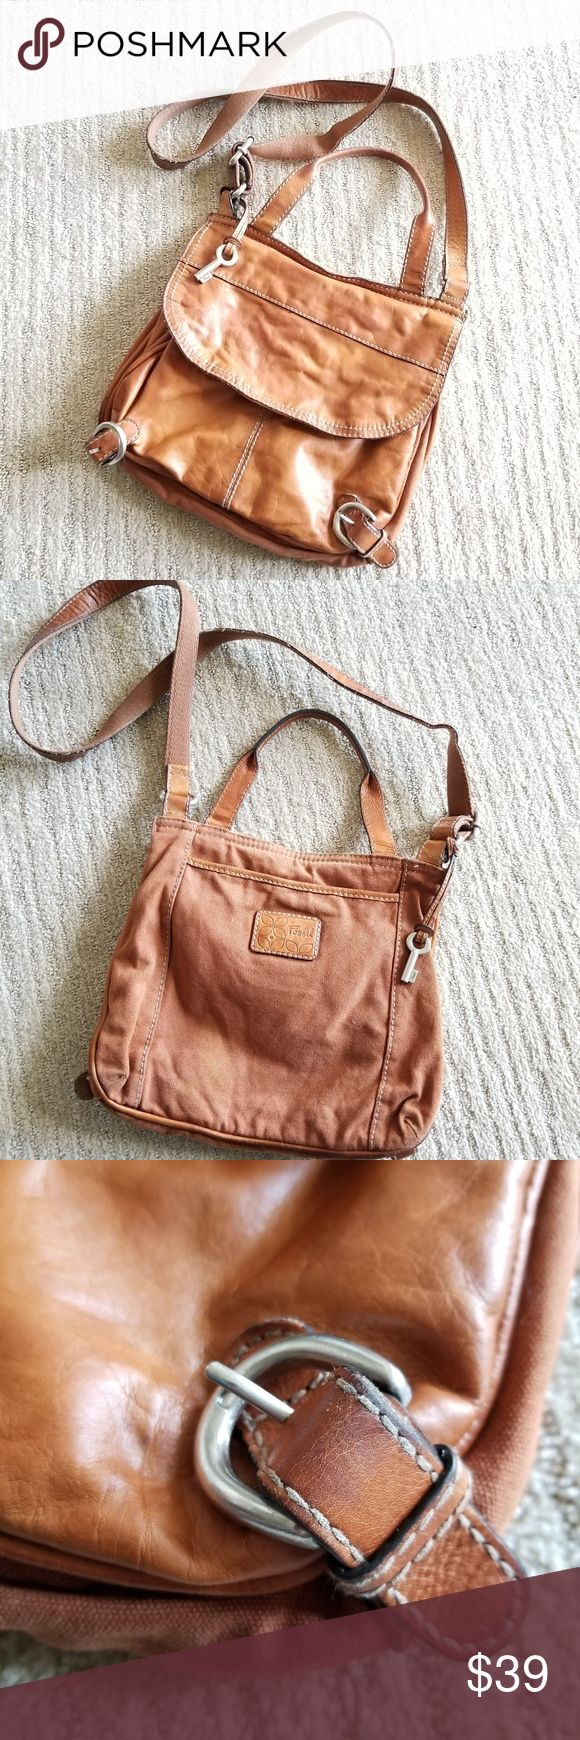 """Fossil Bag / Purse Leather / Fabric Fossil Bag / Purse / Crossbody / shoulderbag. Hippy, boho style. One side is brown leather the other side is fabric. Good condition but the leather side has a few pen marks and the fabric side has a faded spot as shown. No holes or tears. The inside is pretty clean. Silver hardware, measures about 12"""" x 10"""" x 3"""". Hippy purse, boho purse. Shoulder bag Fossil Bags Crossbody Bags"""